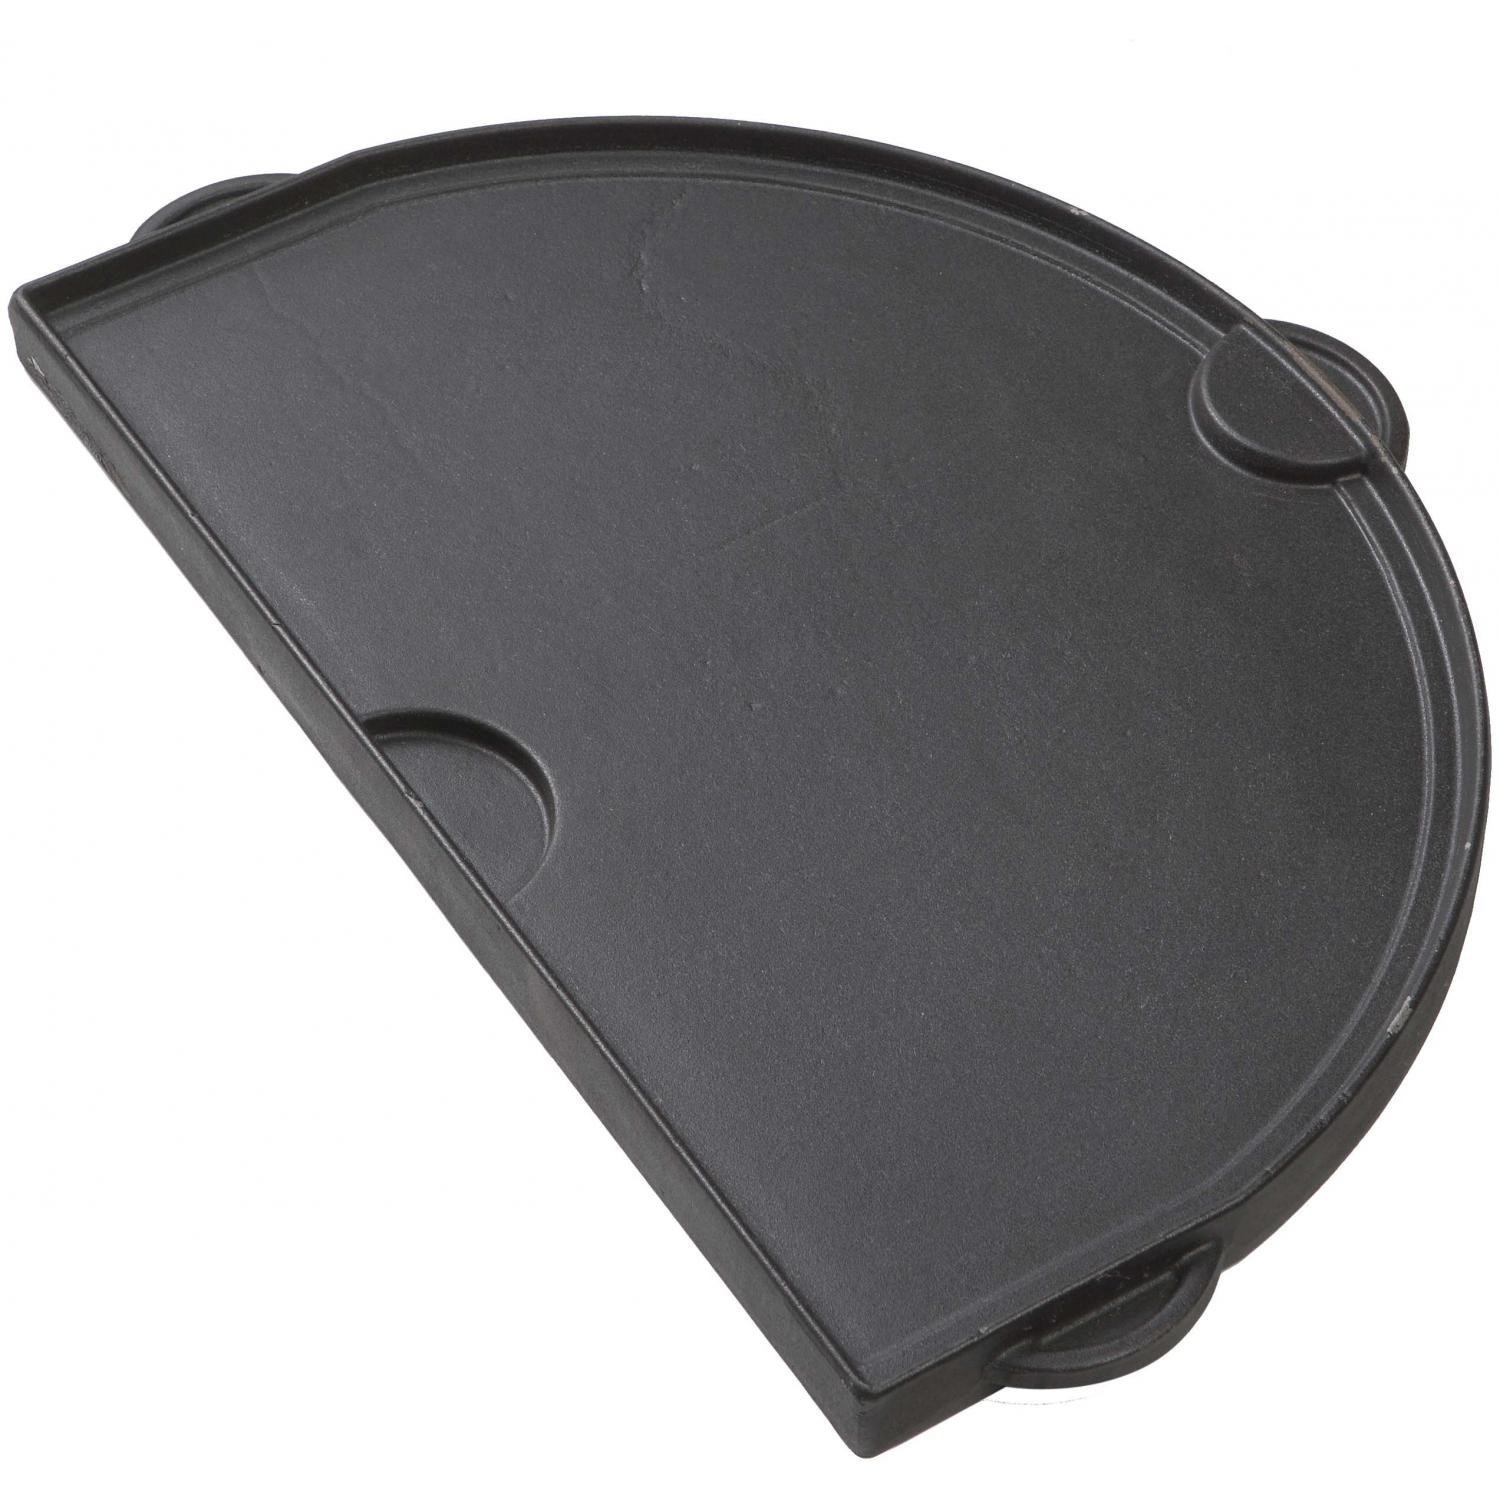 Primo PGS-95-0360 Griddle, Extra Large, Black